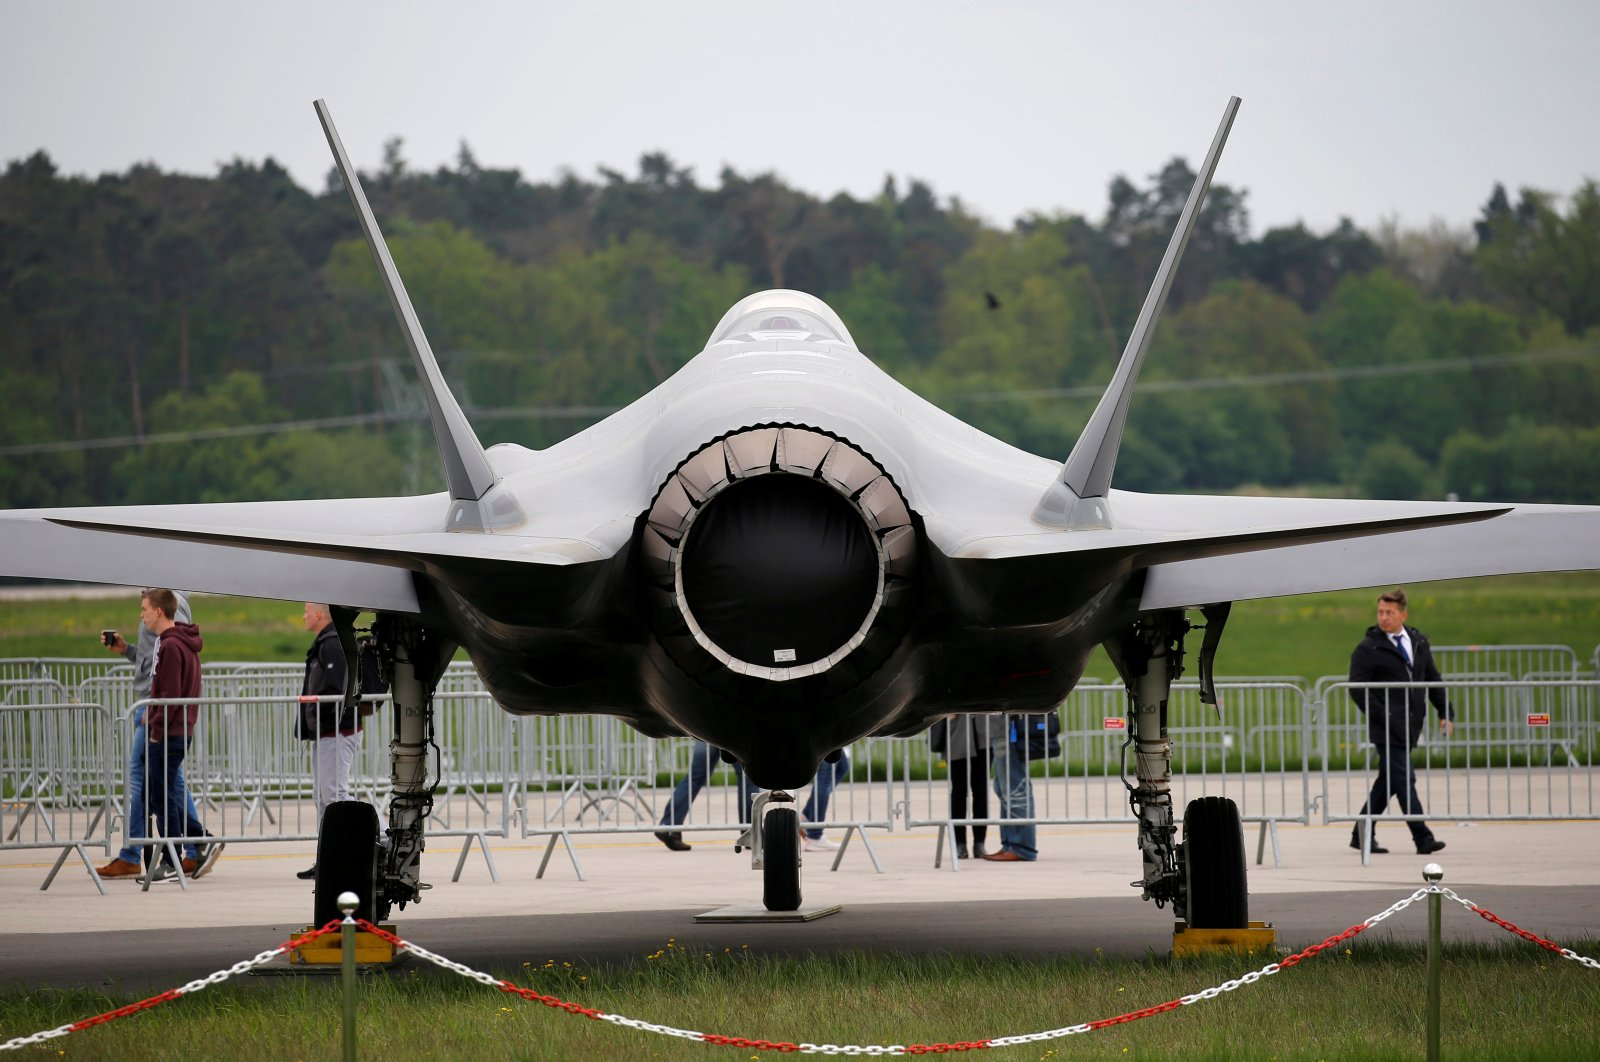 A Lockheed Martin F-35 aircraft is seen at the ILA Air Show in Berlin, Germany, April 25, 2018. (Reuters File Photo)